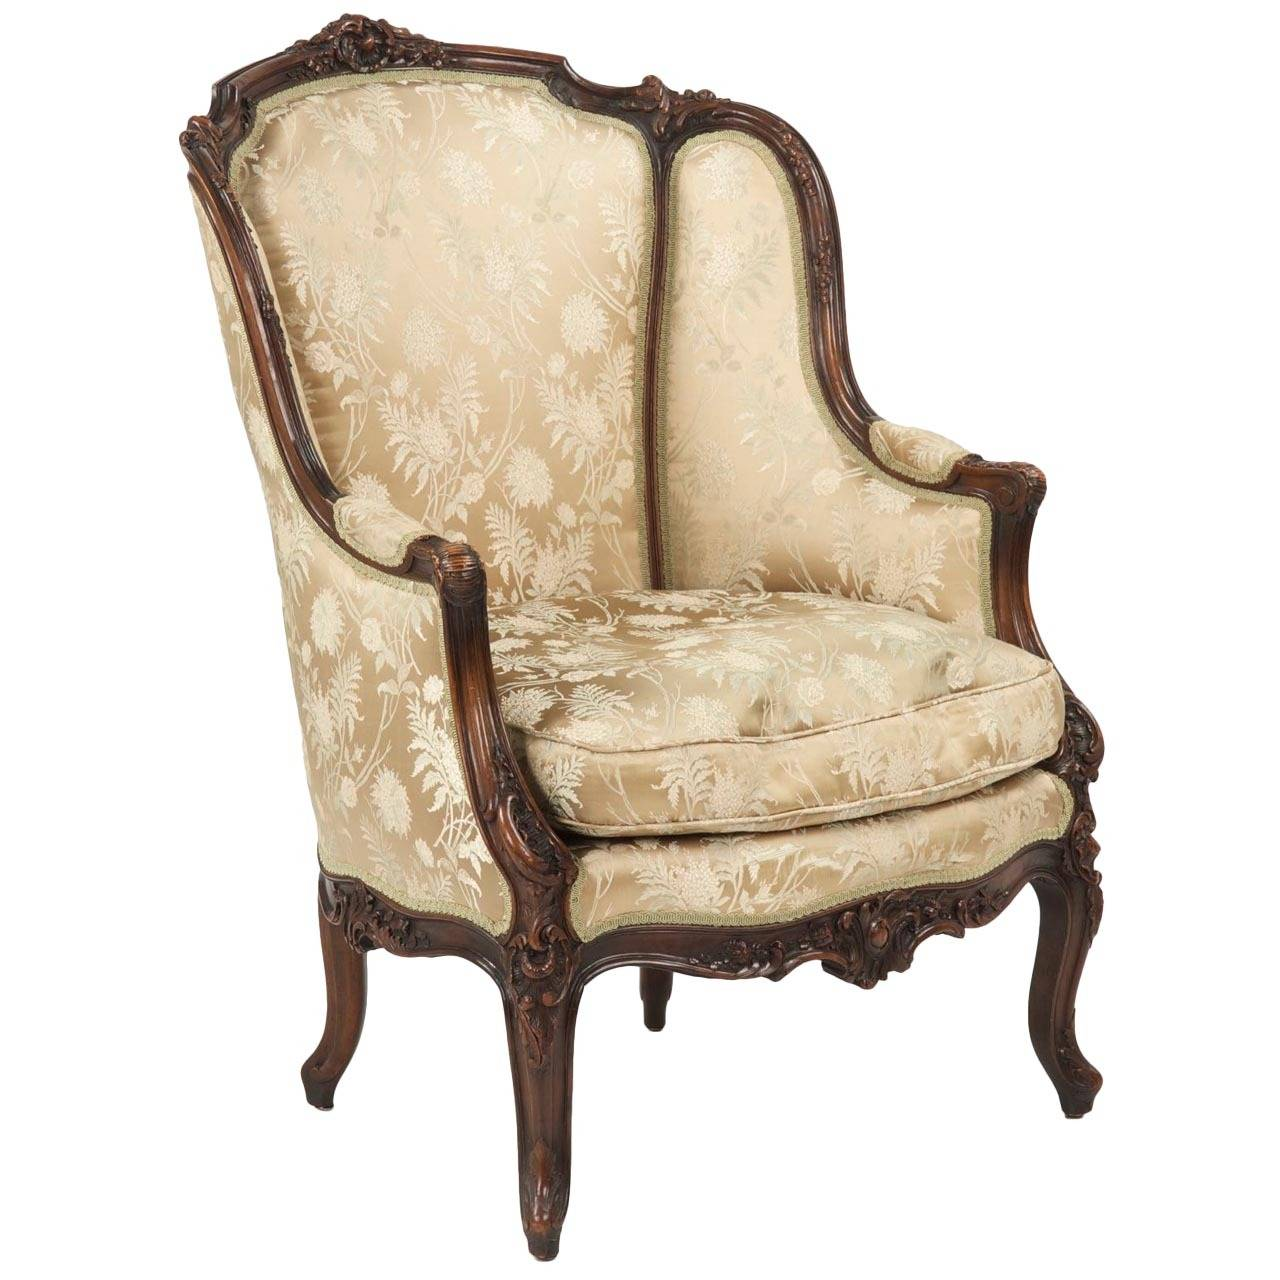 bergere chairs spotlight chair covers au 19th century rococo revival antique armchair in